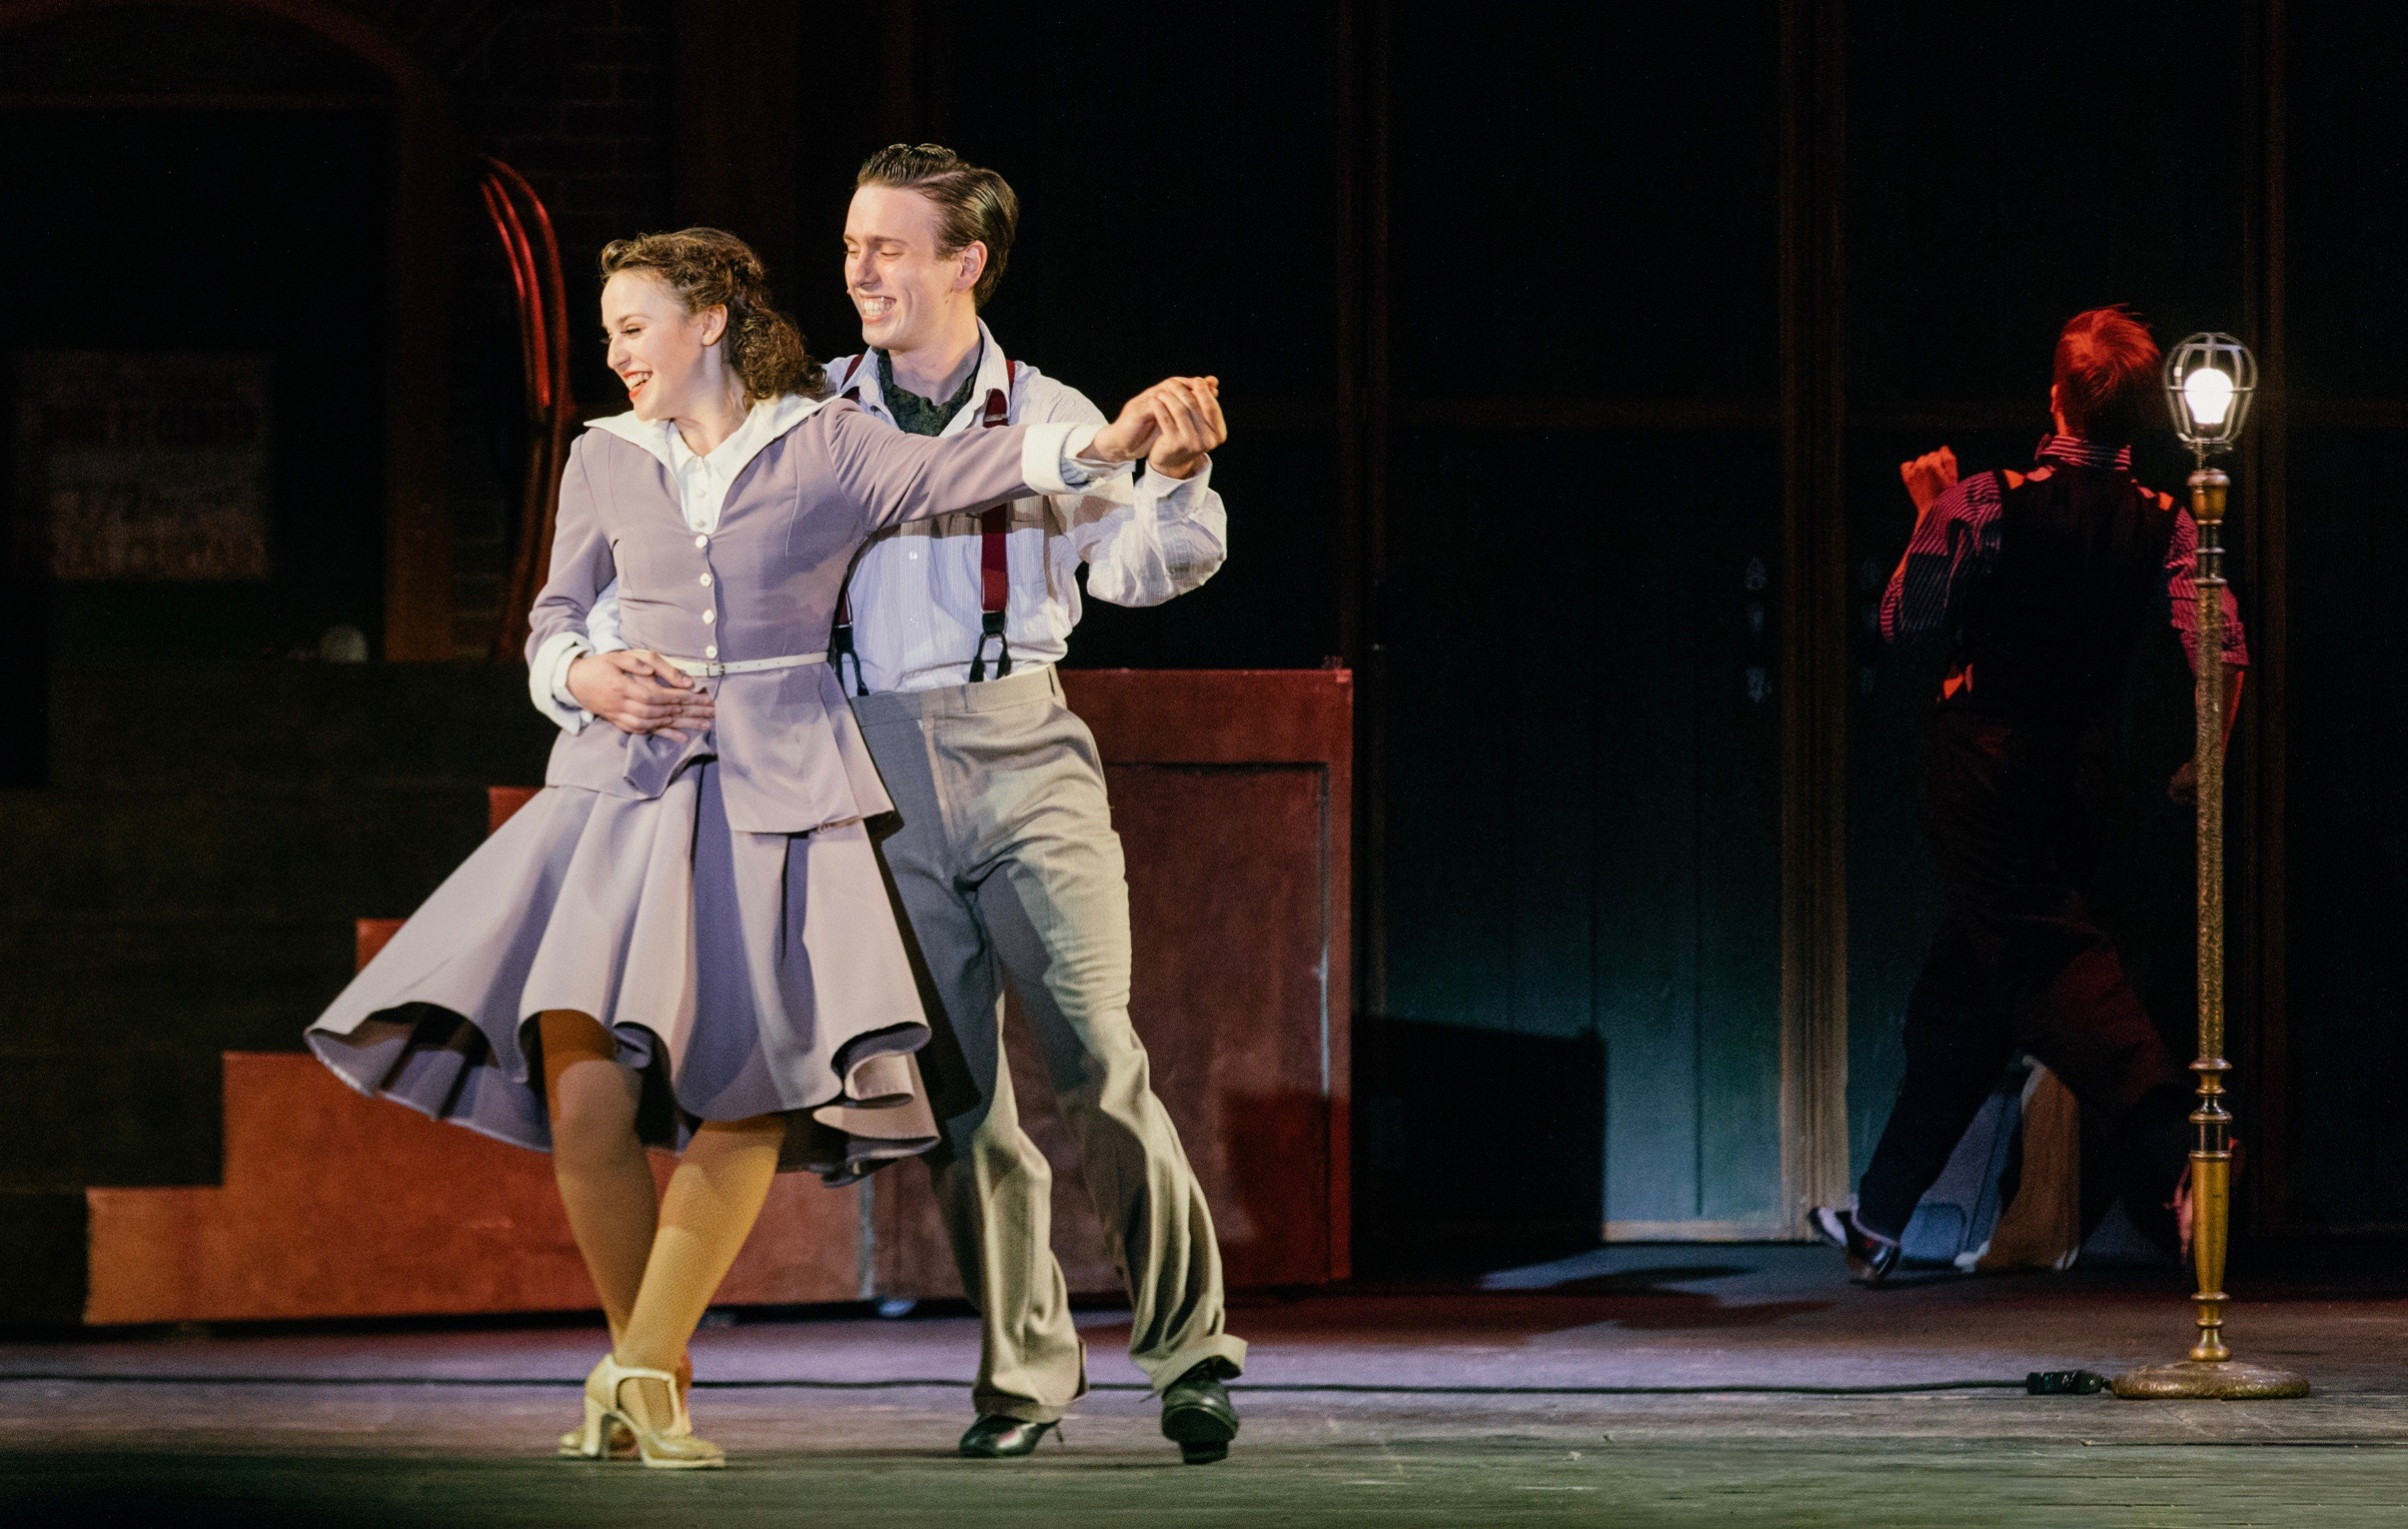 Paige Fraser and Blake Sartin dance in the Theatre Under the Stars production of 42nd Street.